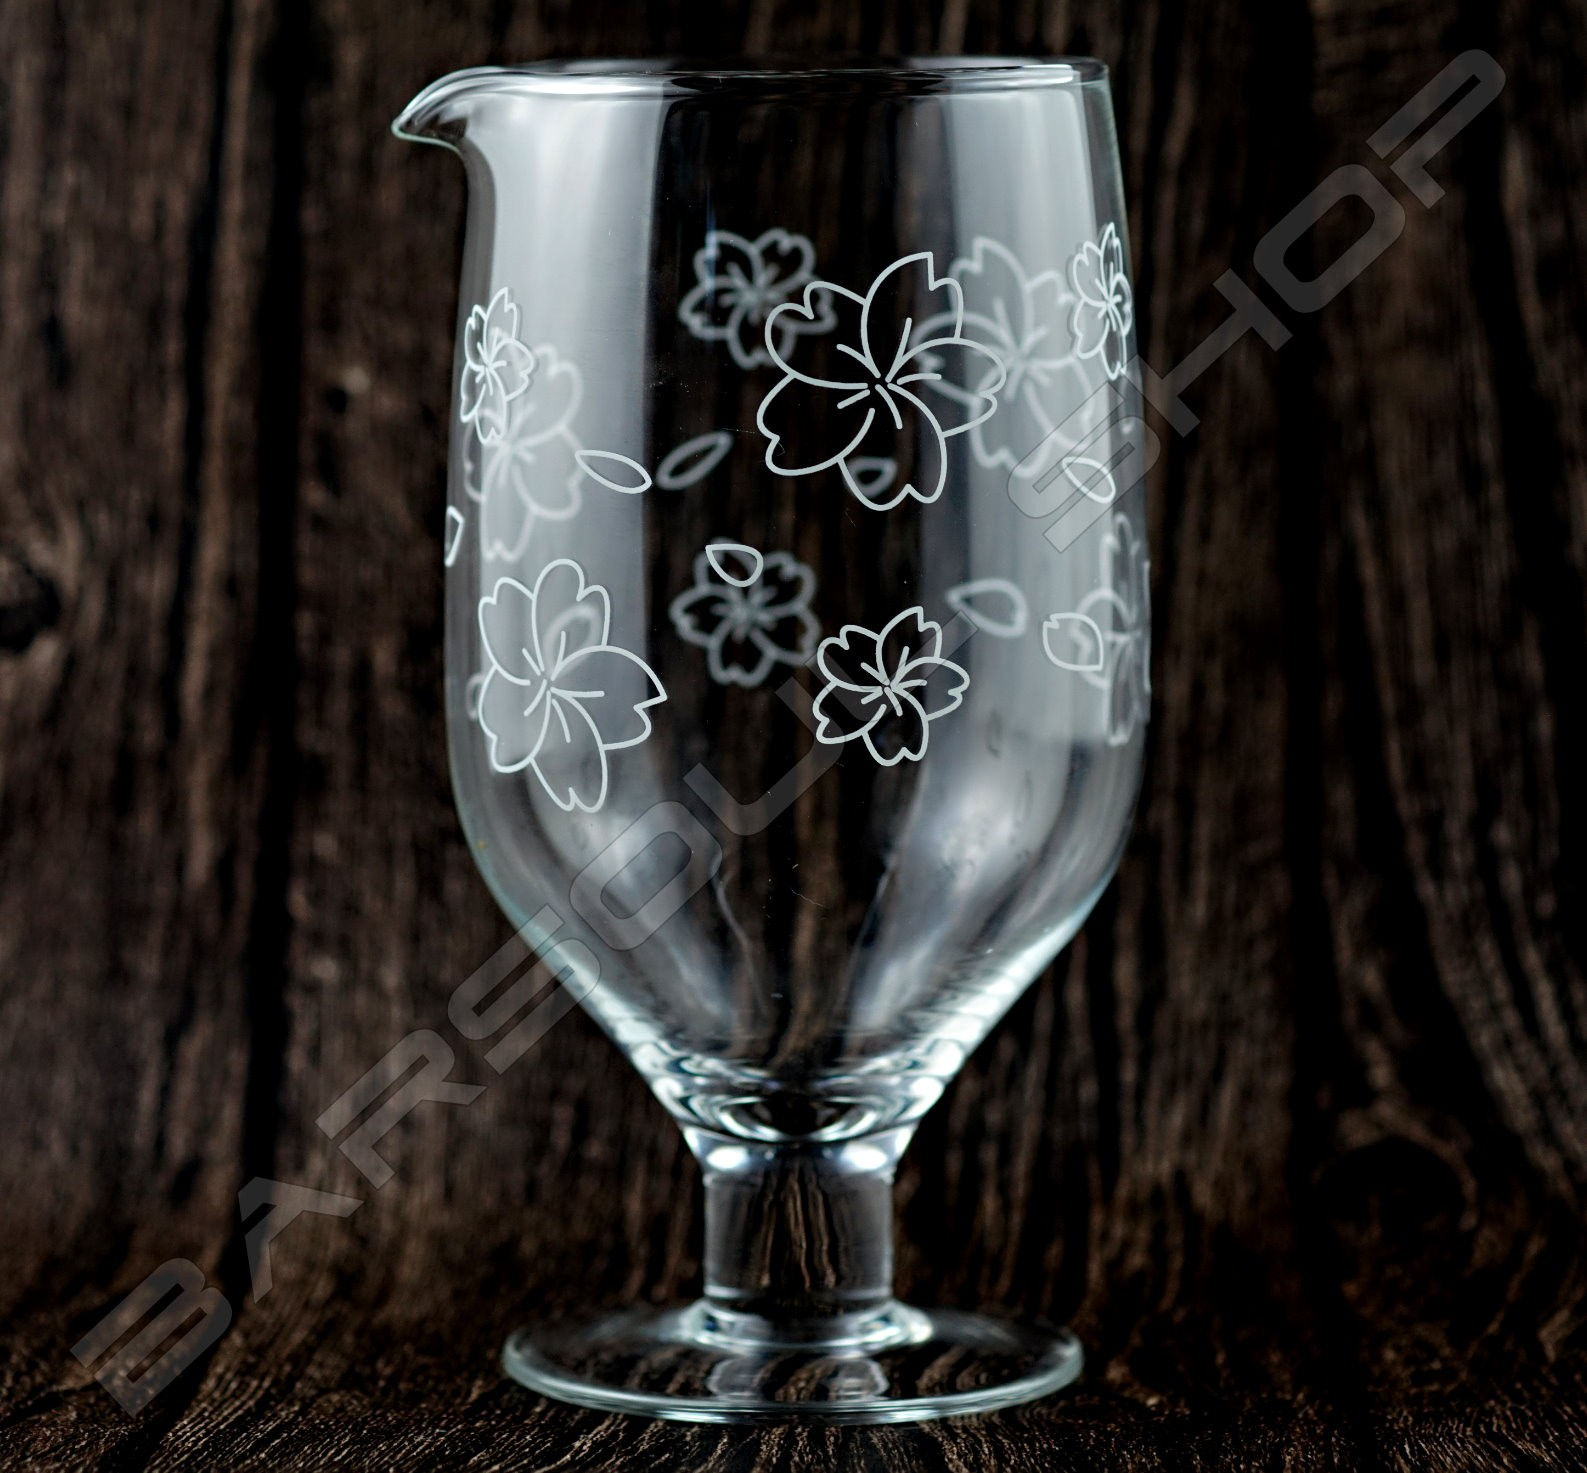 高腳櫻花攪拌杯800ml High angle Cherry mixing glass